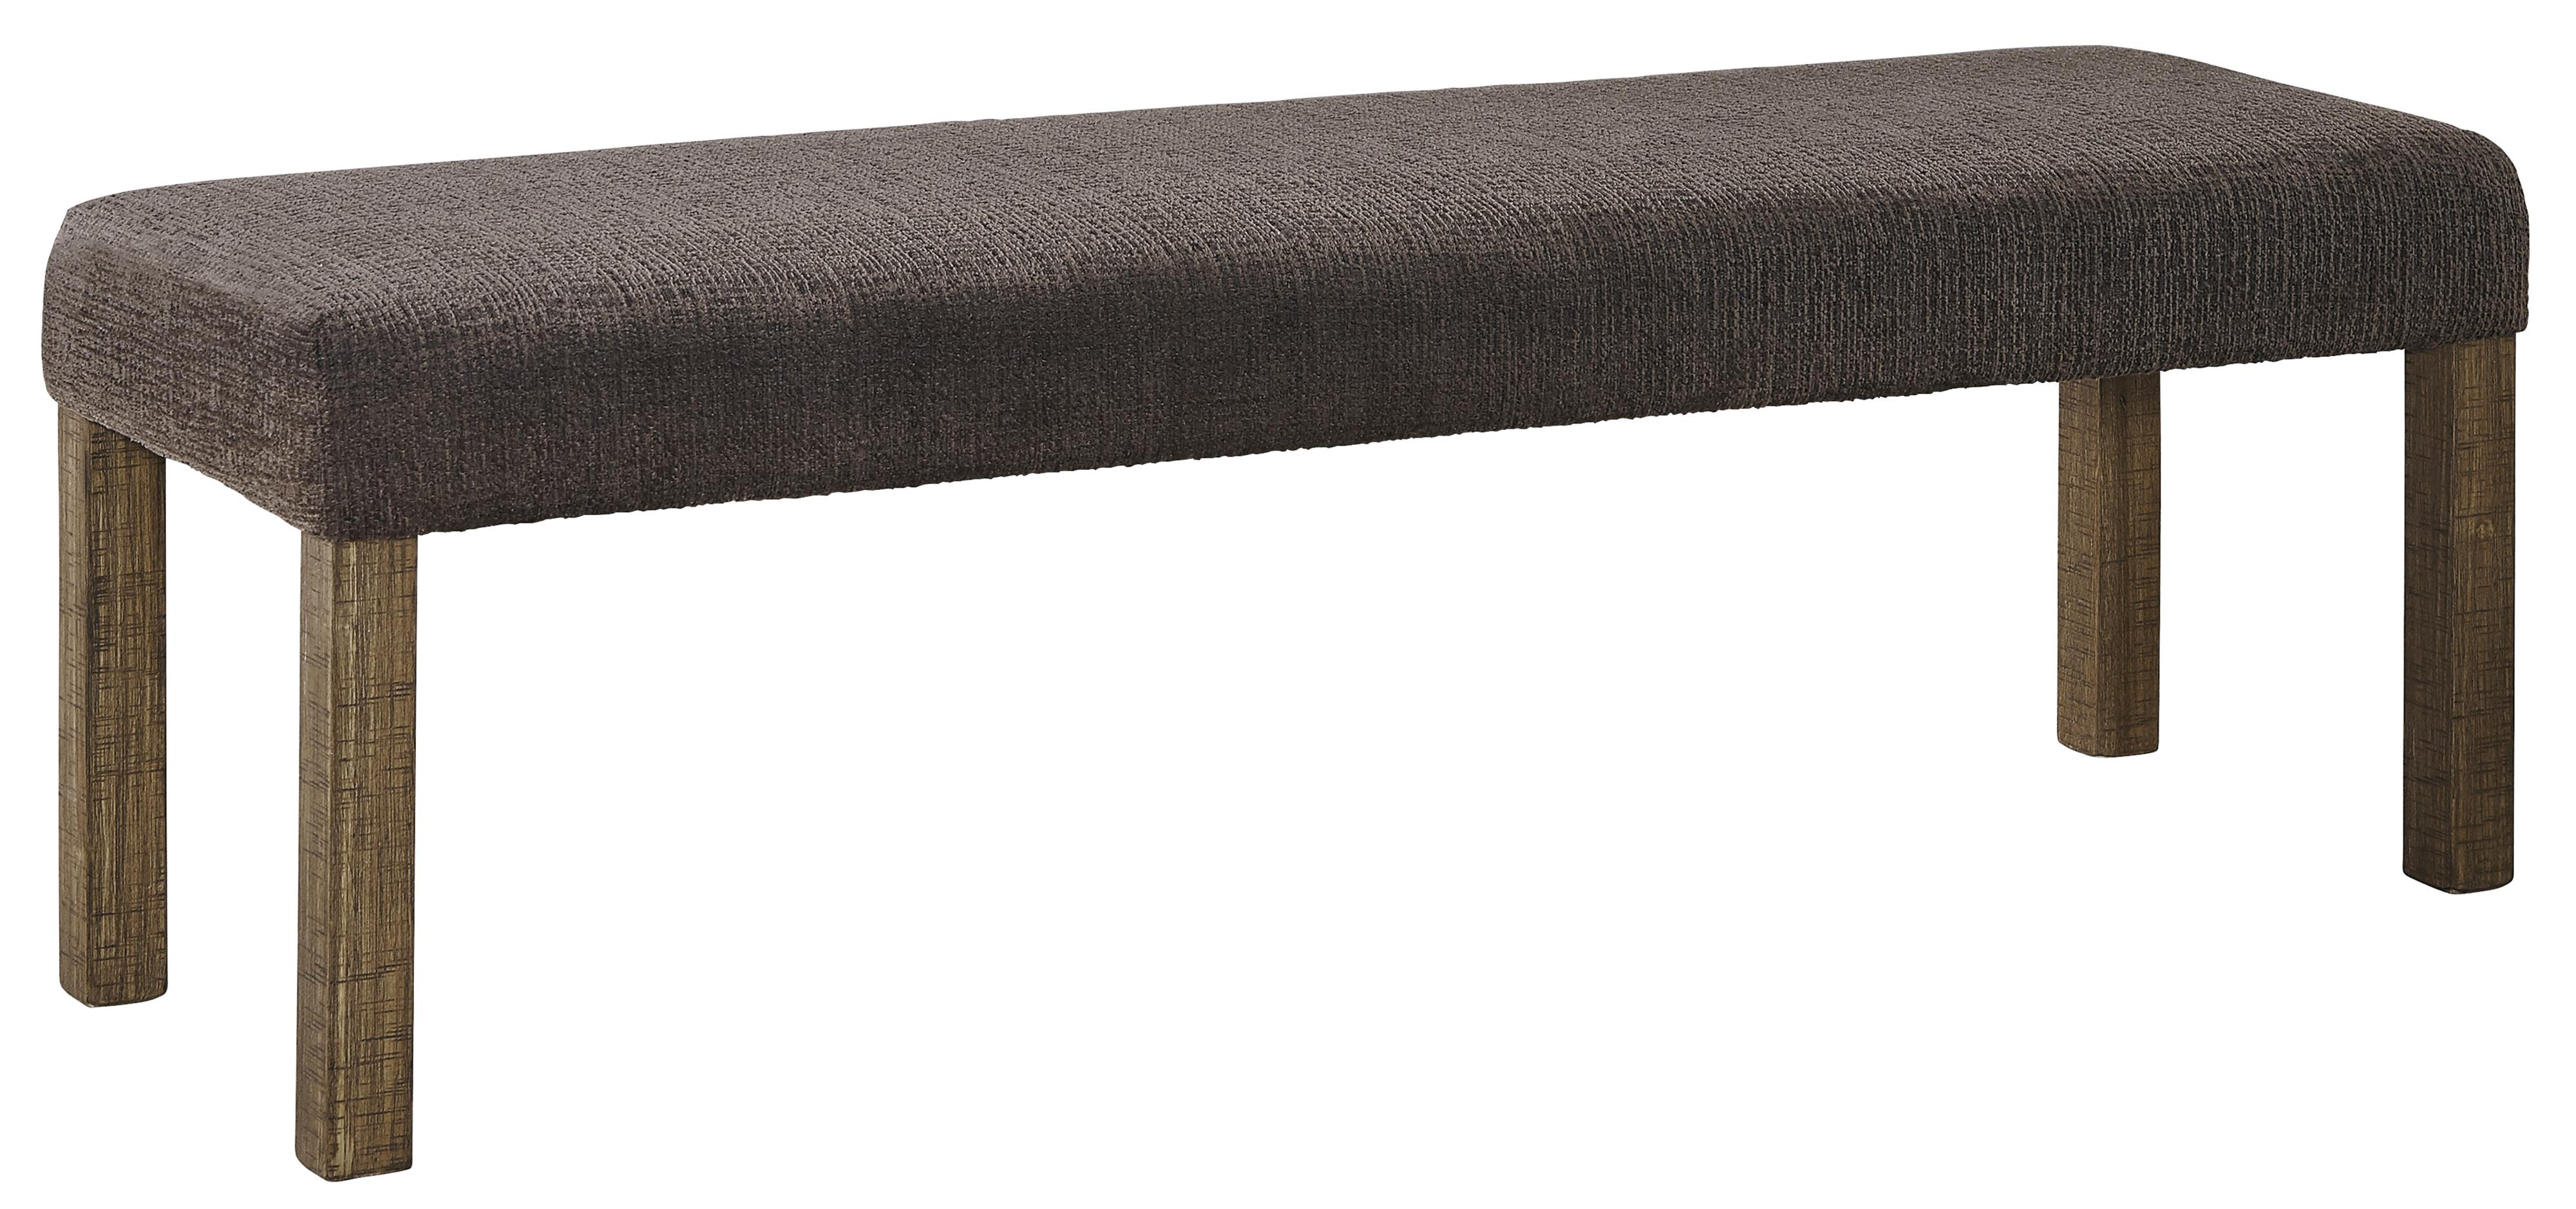 Dining Room Tables Bench Seating Signature Design By Ashley Tamilo D714 00 Large